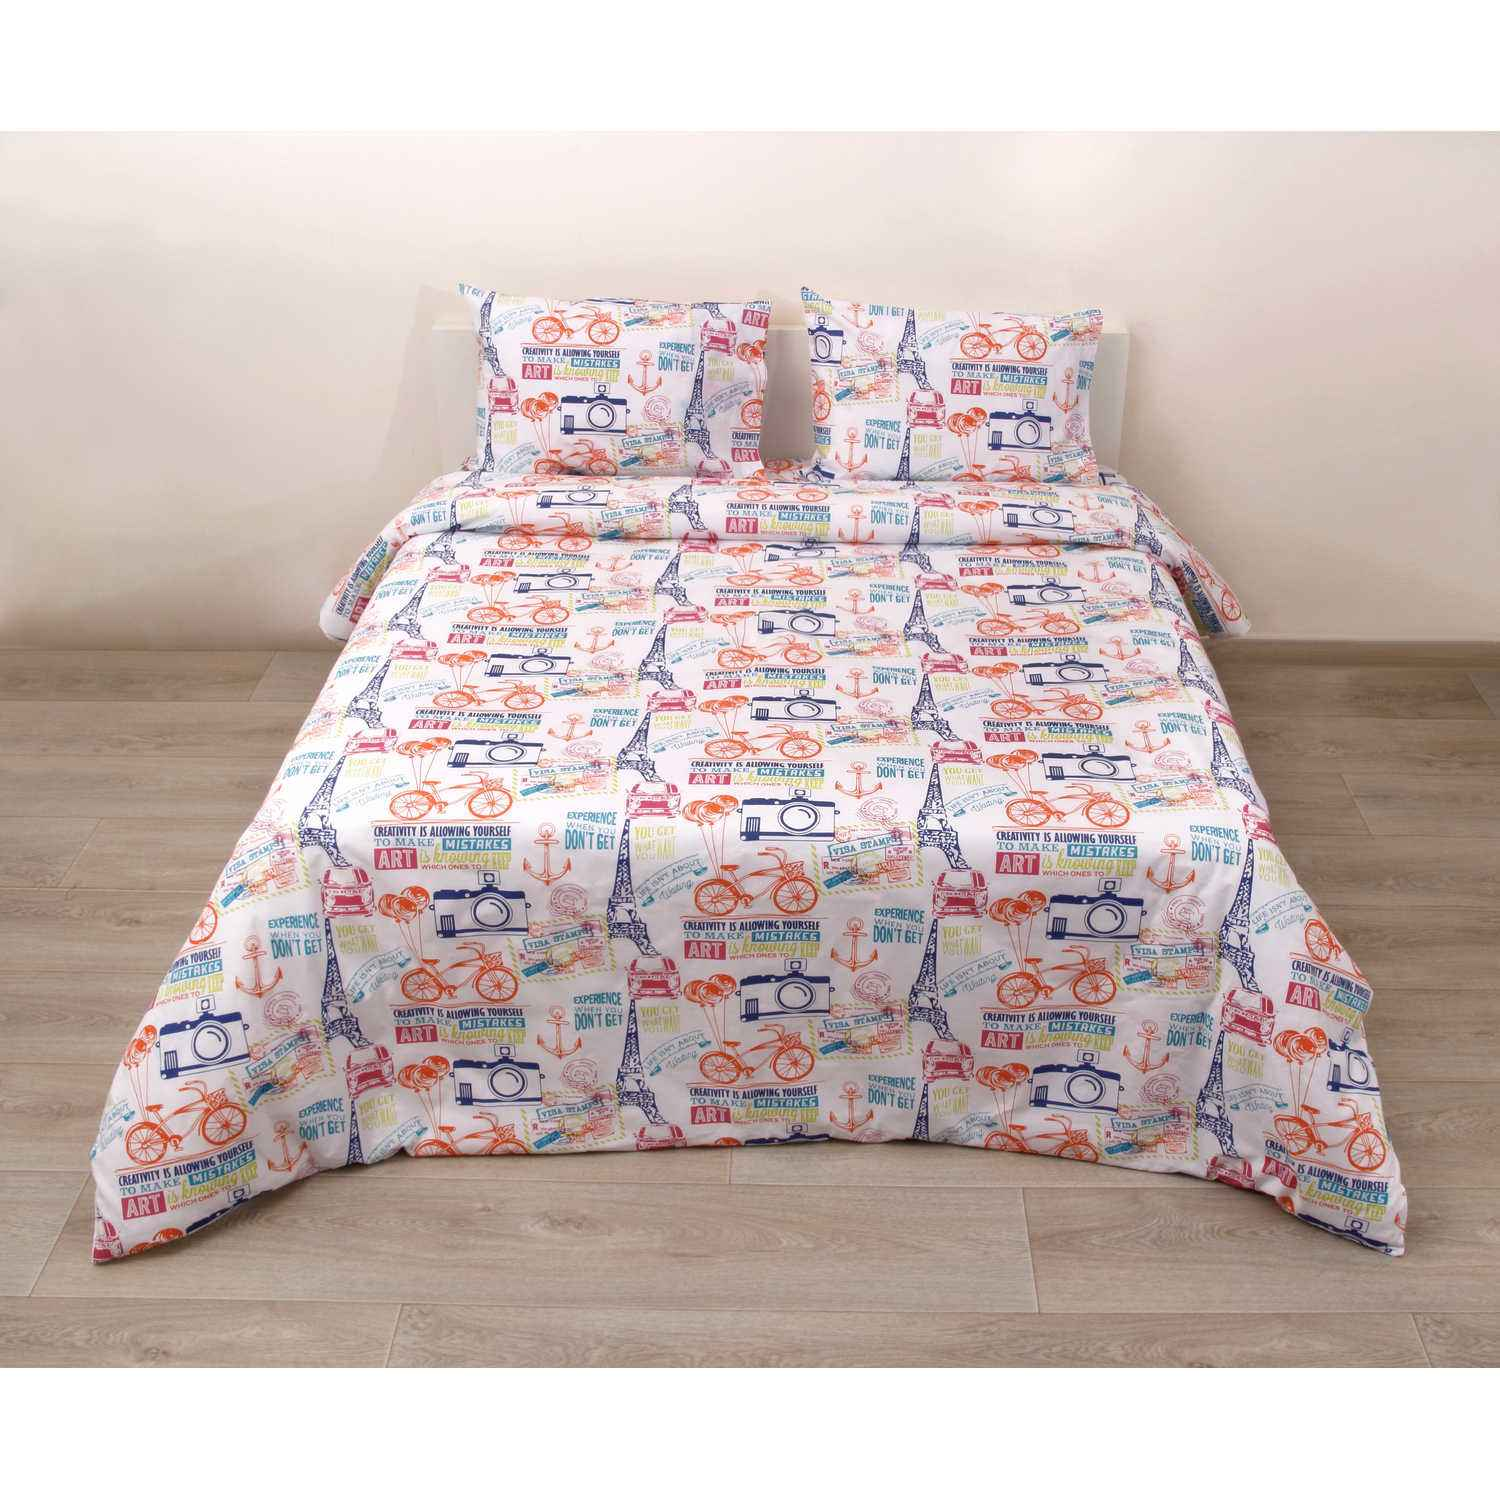 Σεντόνια Σετ 4Τμχ. 31908 White-Multi Viopros King Size 275x275cm